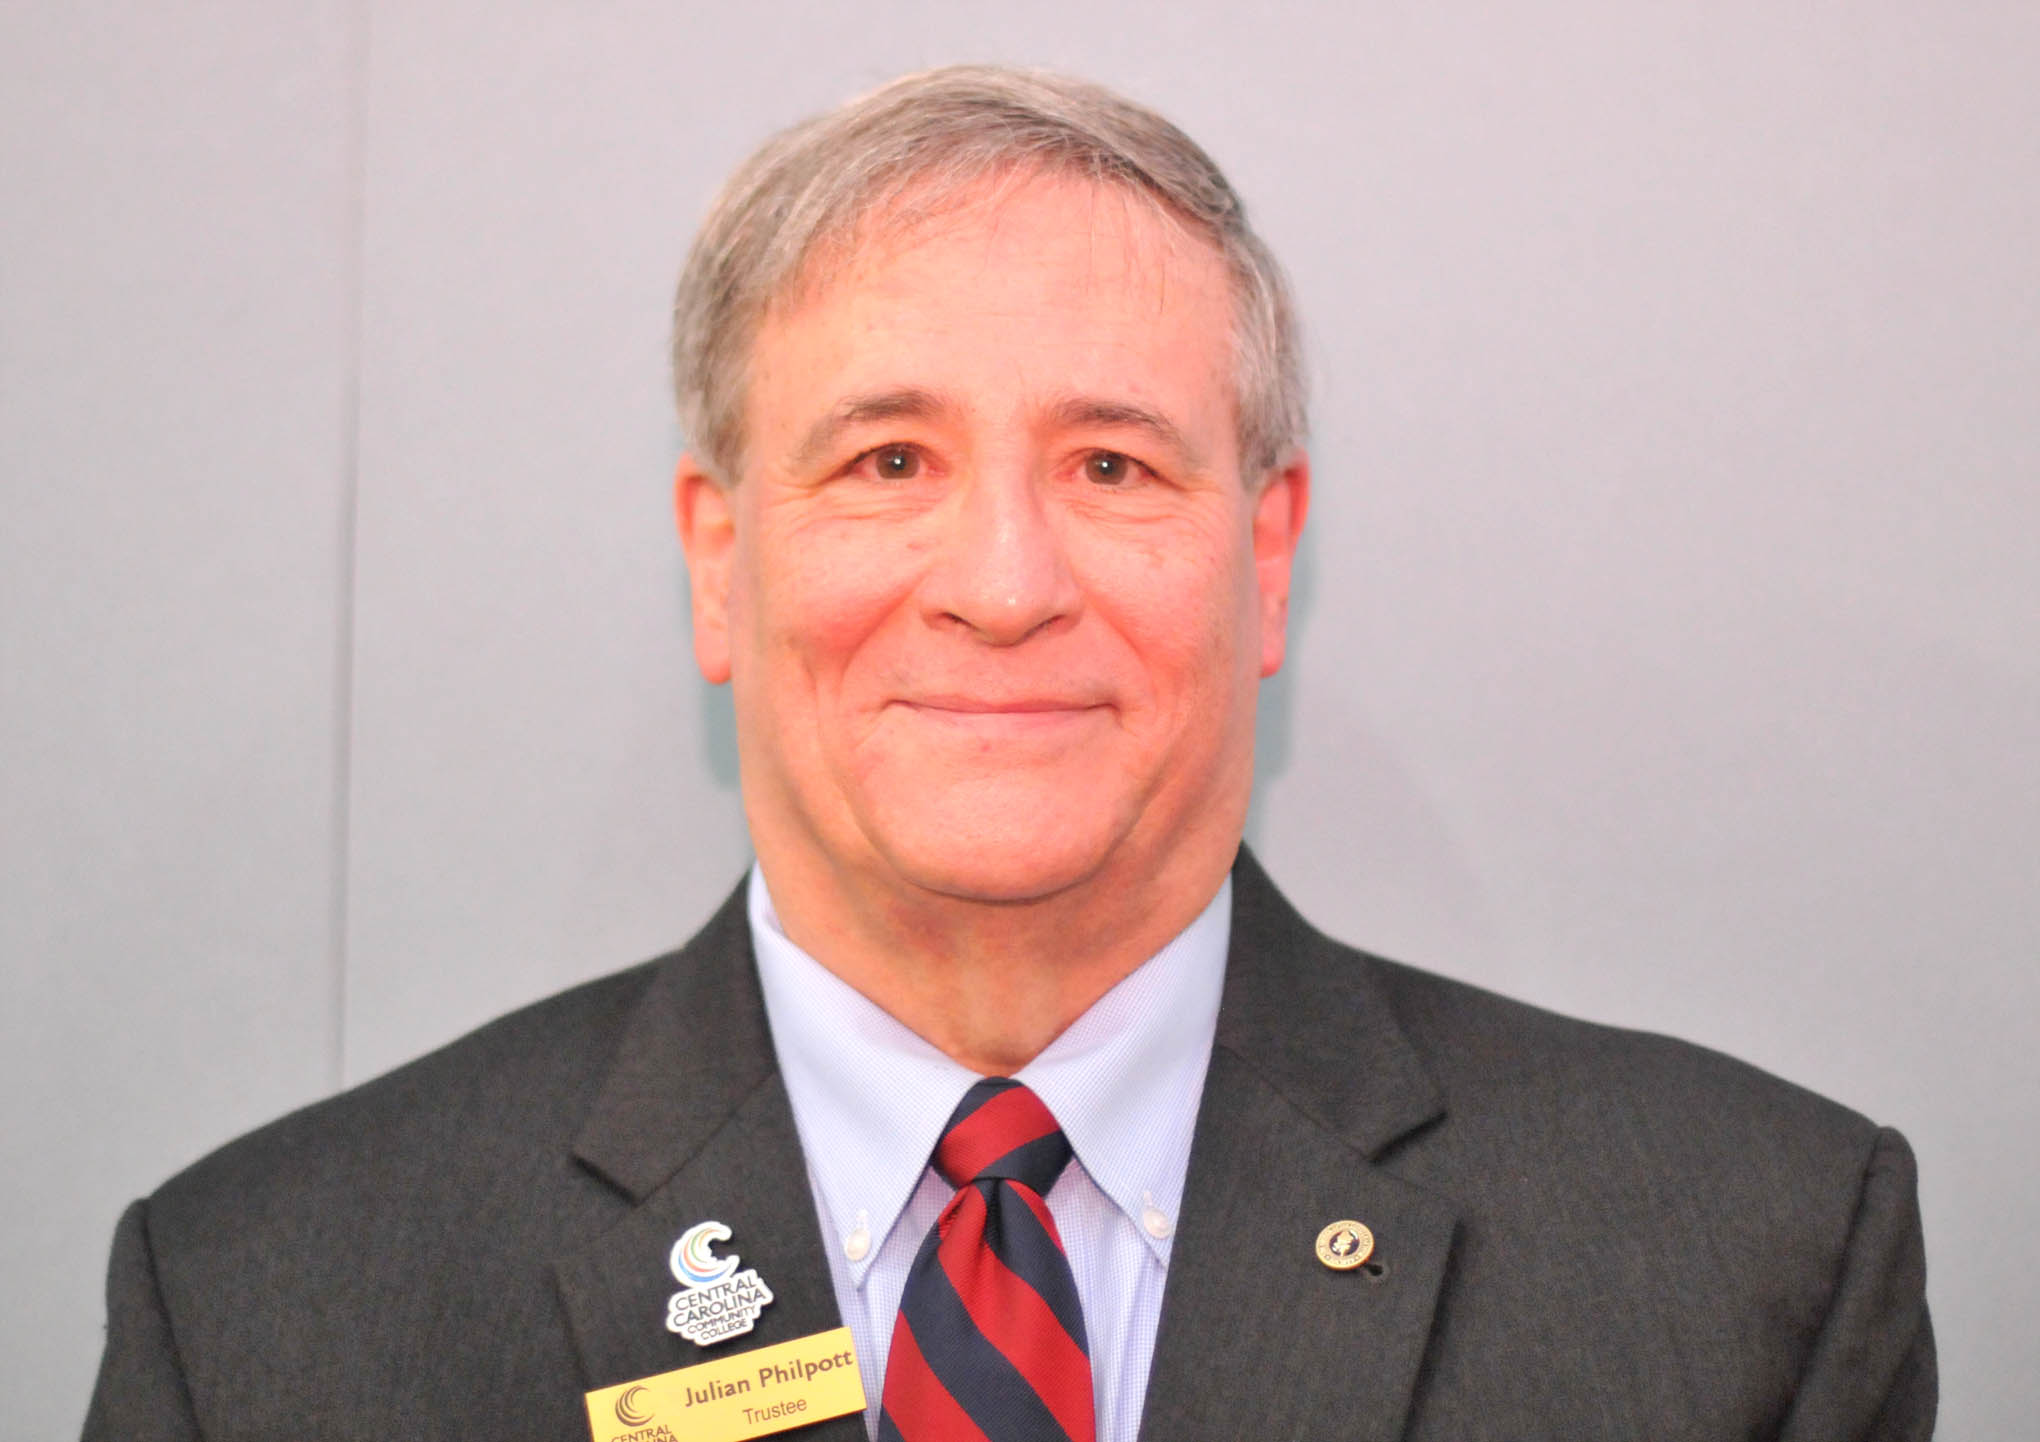 Click to enlarge,  Julian Philpott, Chairman of the Central Carolina Community College (CCCC) Board of Trustees, has been elected to the Executive Board of the North Carolina Association of Community College Trustees (NCACCT).